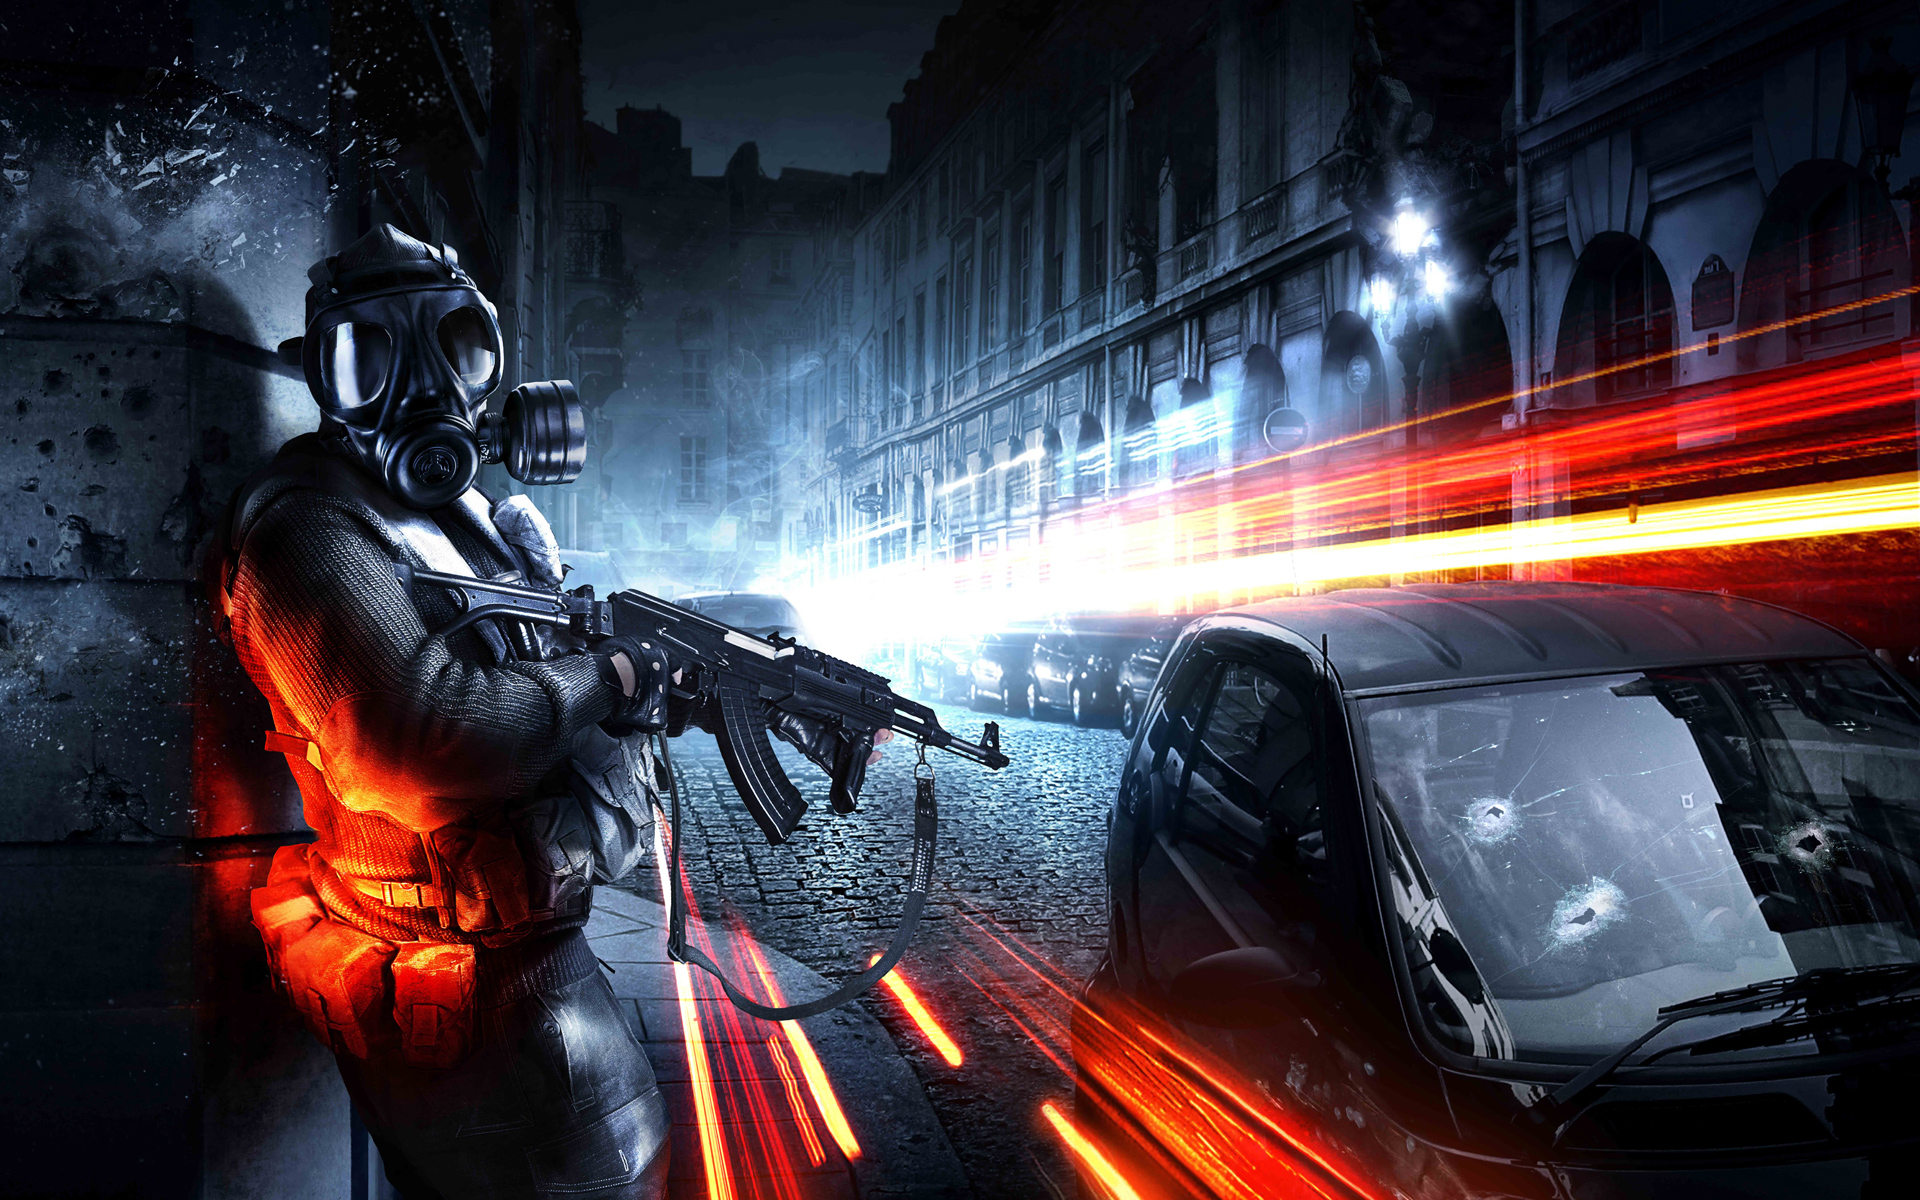 2011 Battlefield 3 Game Wallpapers HD Wallpapers 1920x1200